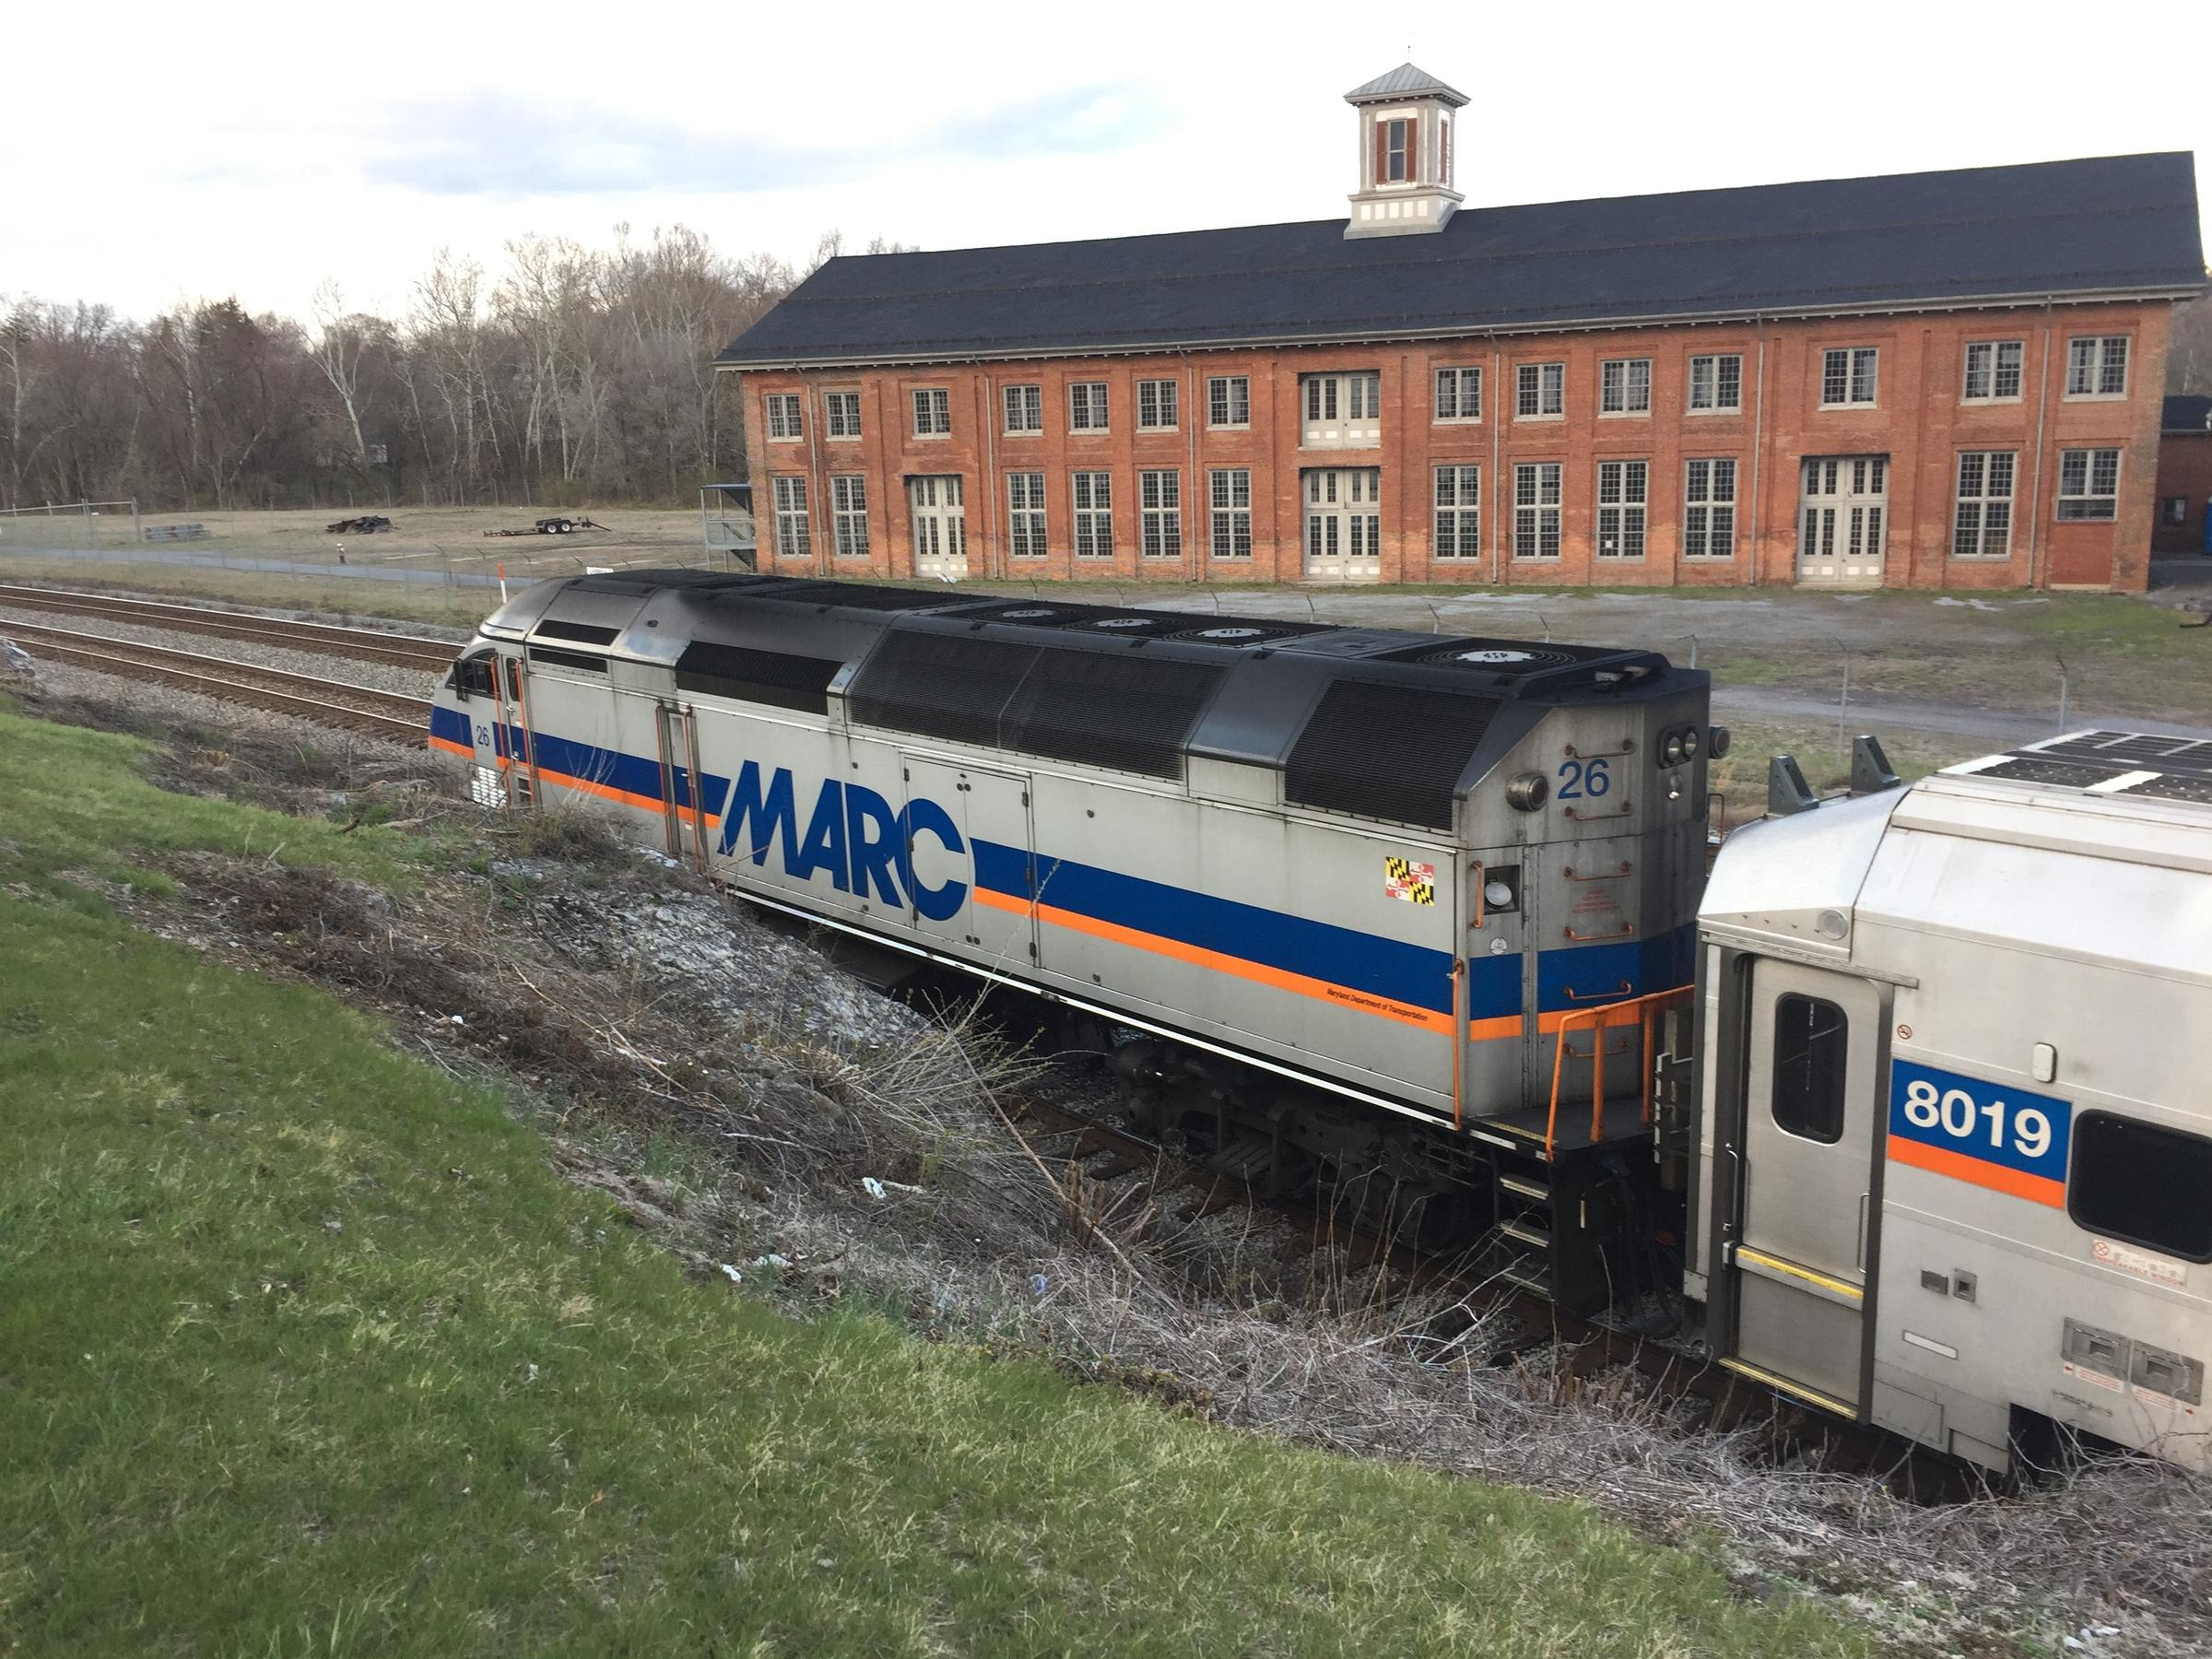 w.va. riders of maryland-based commuter train say they'll likely